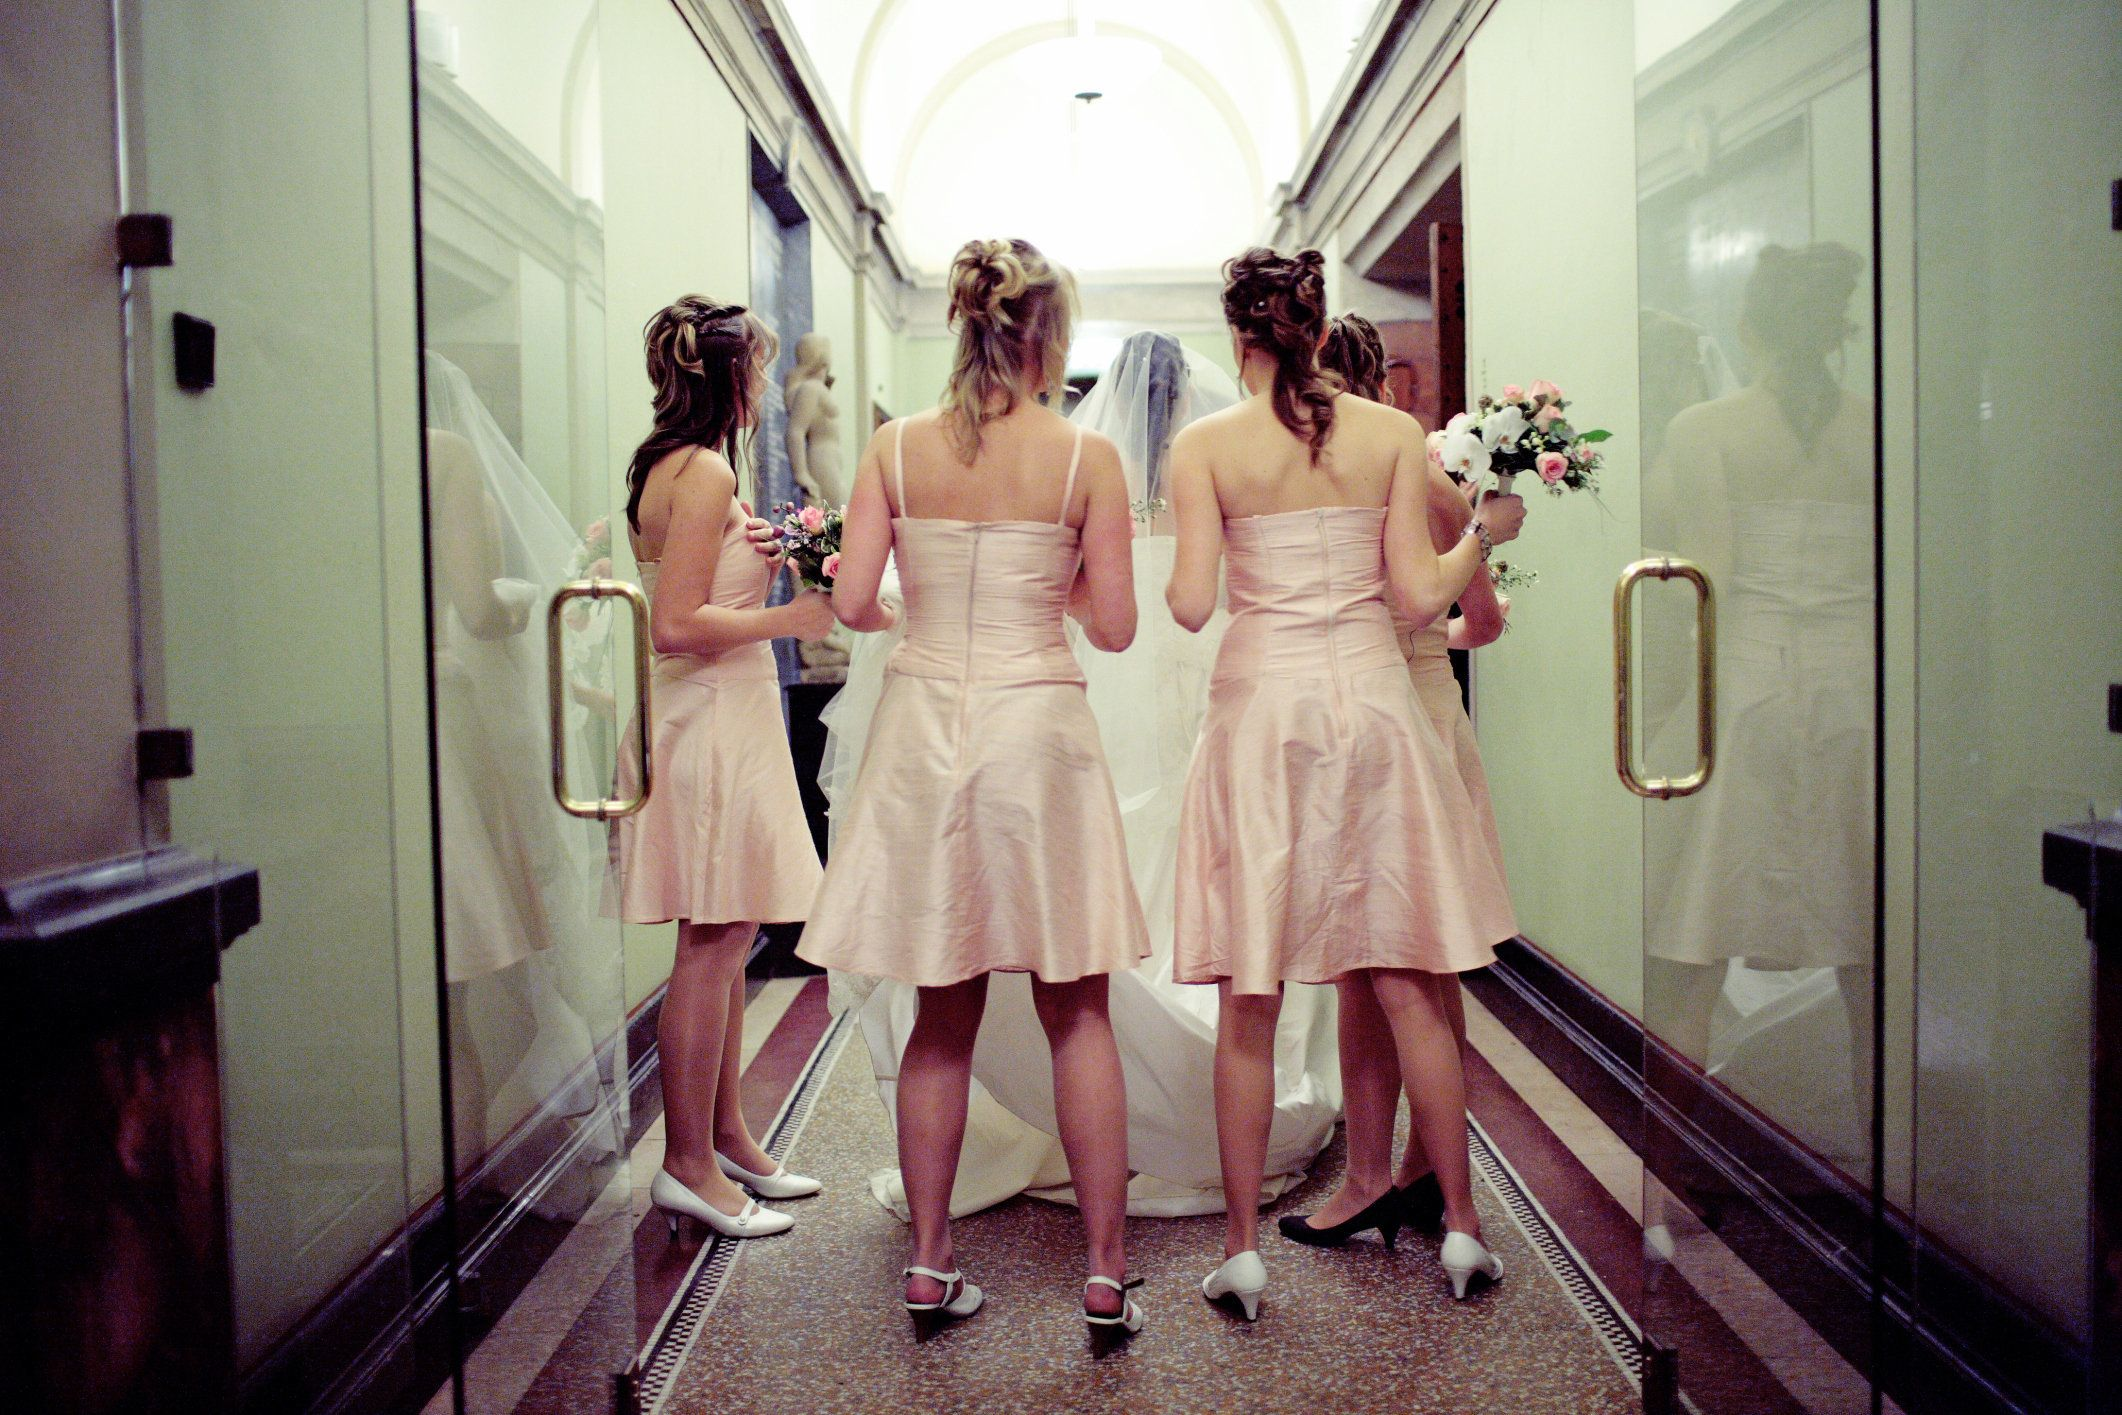 Being a bridesmaid requires quite a bit of time and energy -- but it can also be very rewarding!